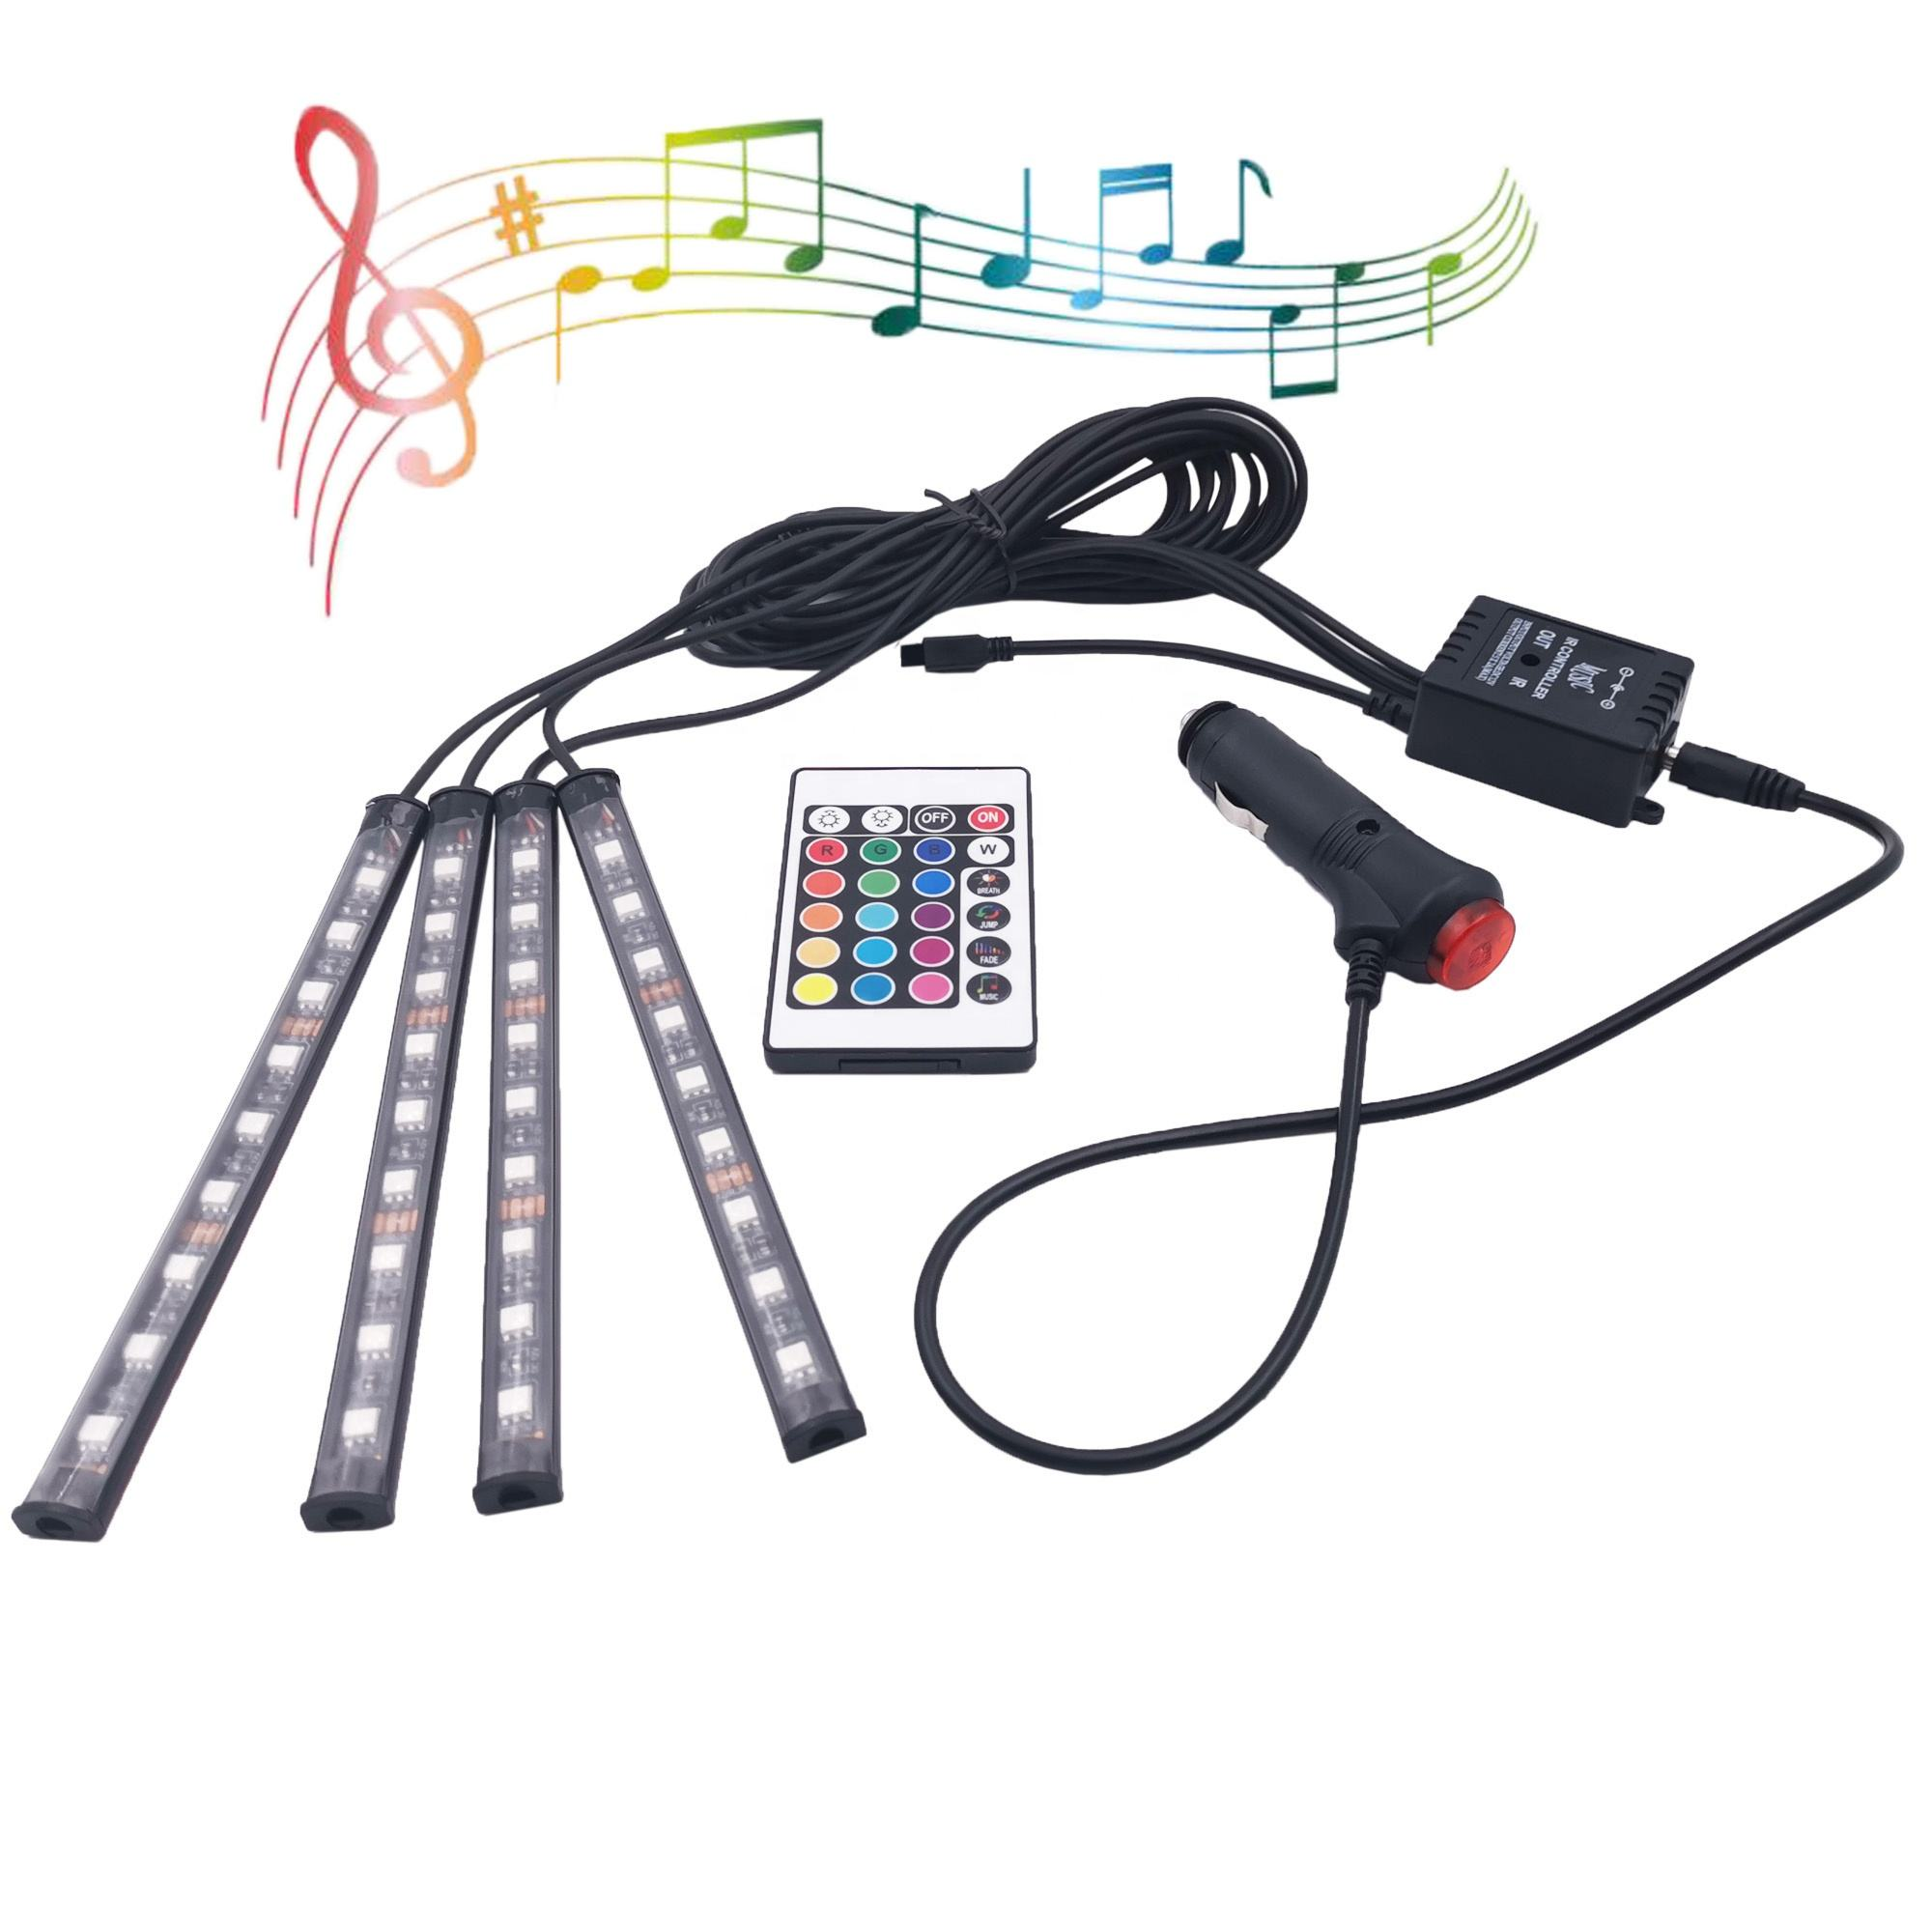 Auto Lighting System Car DJ Atmosphere LED Strip Luci LED Auto Car Decoration Light